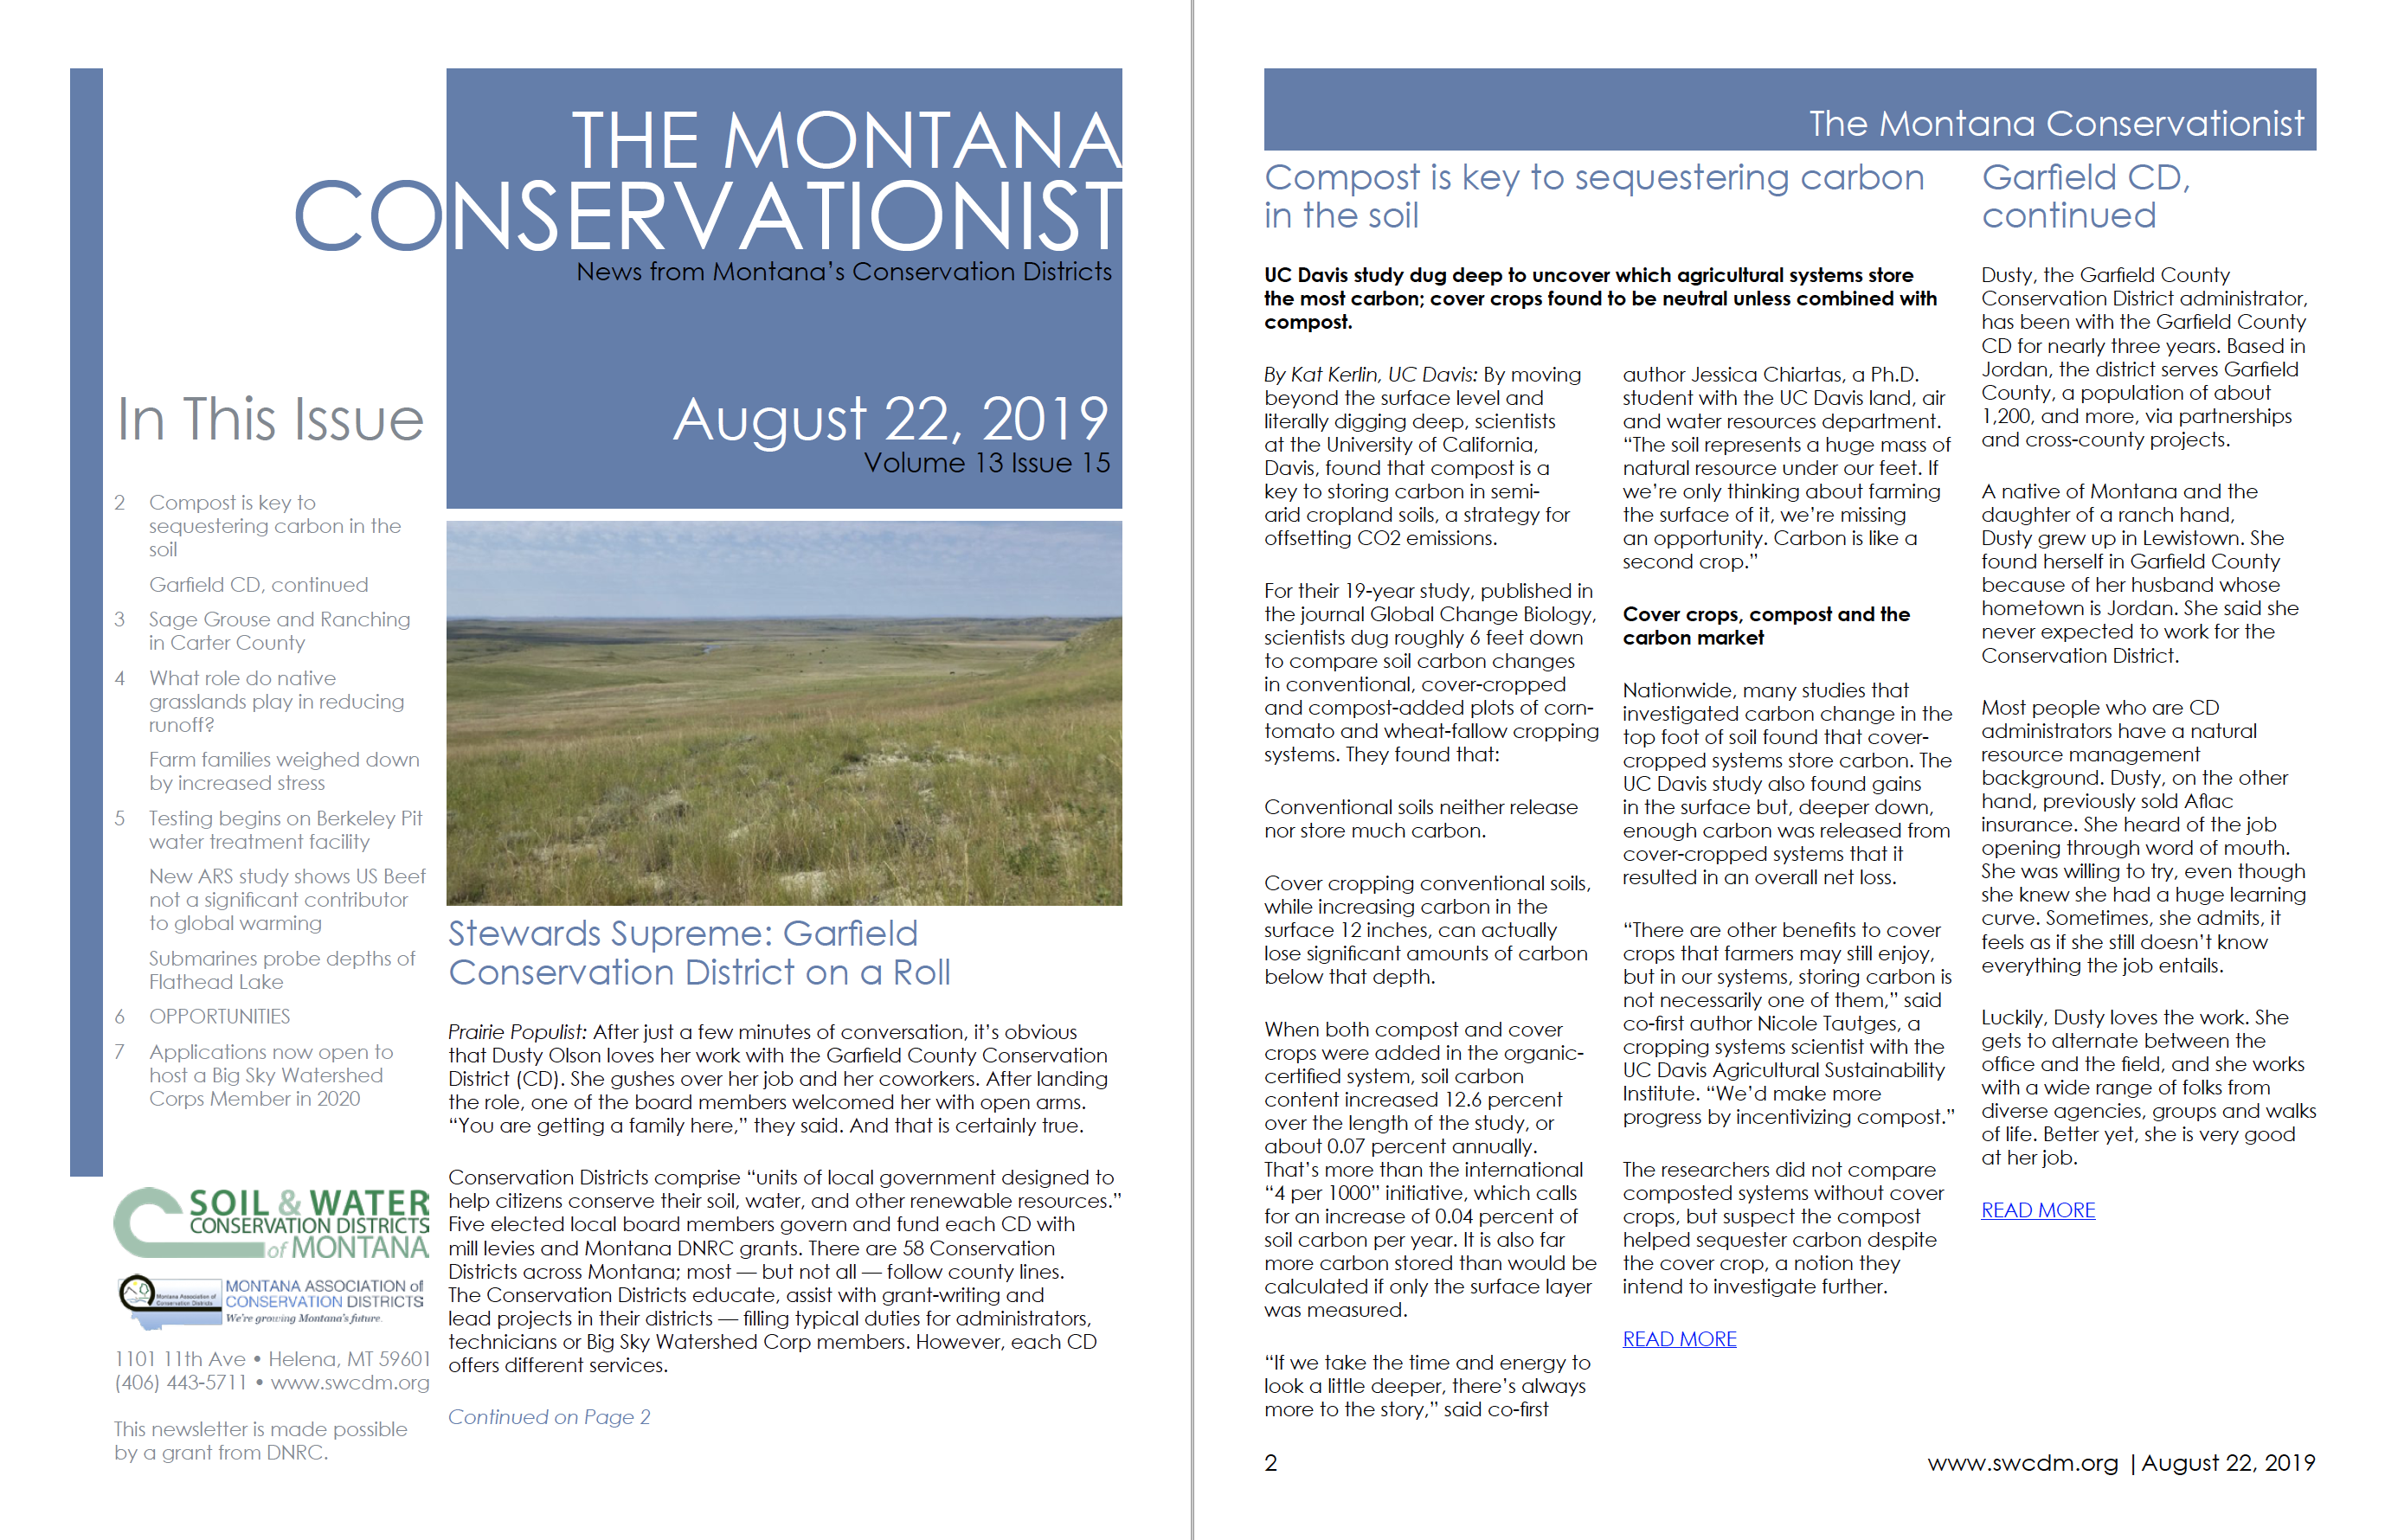 The Montana Conservationist August 22 – Soil and Water